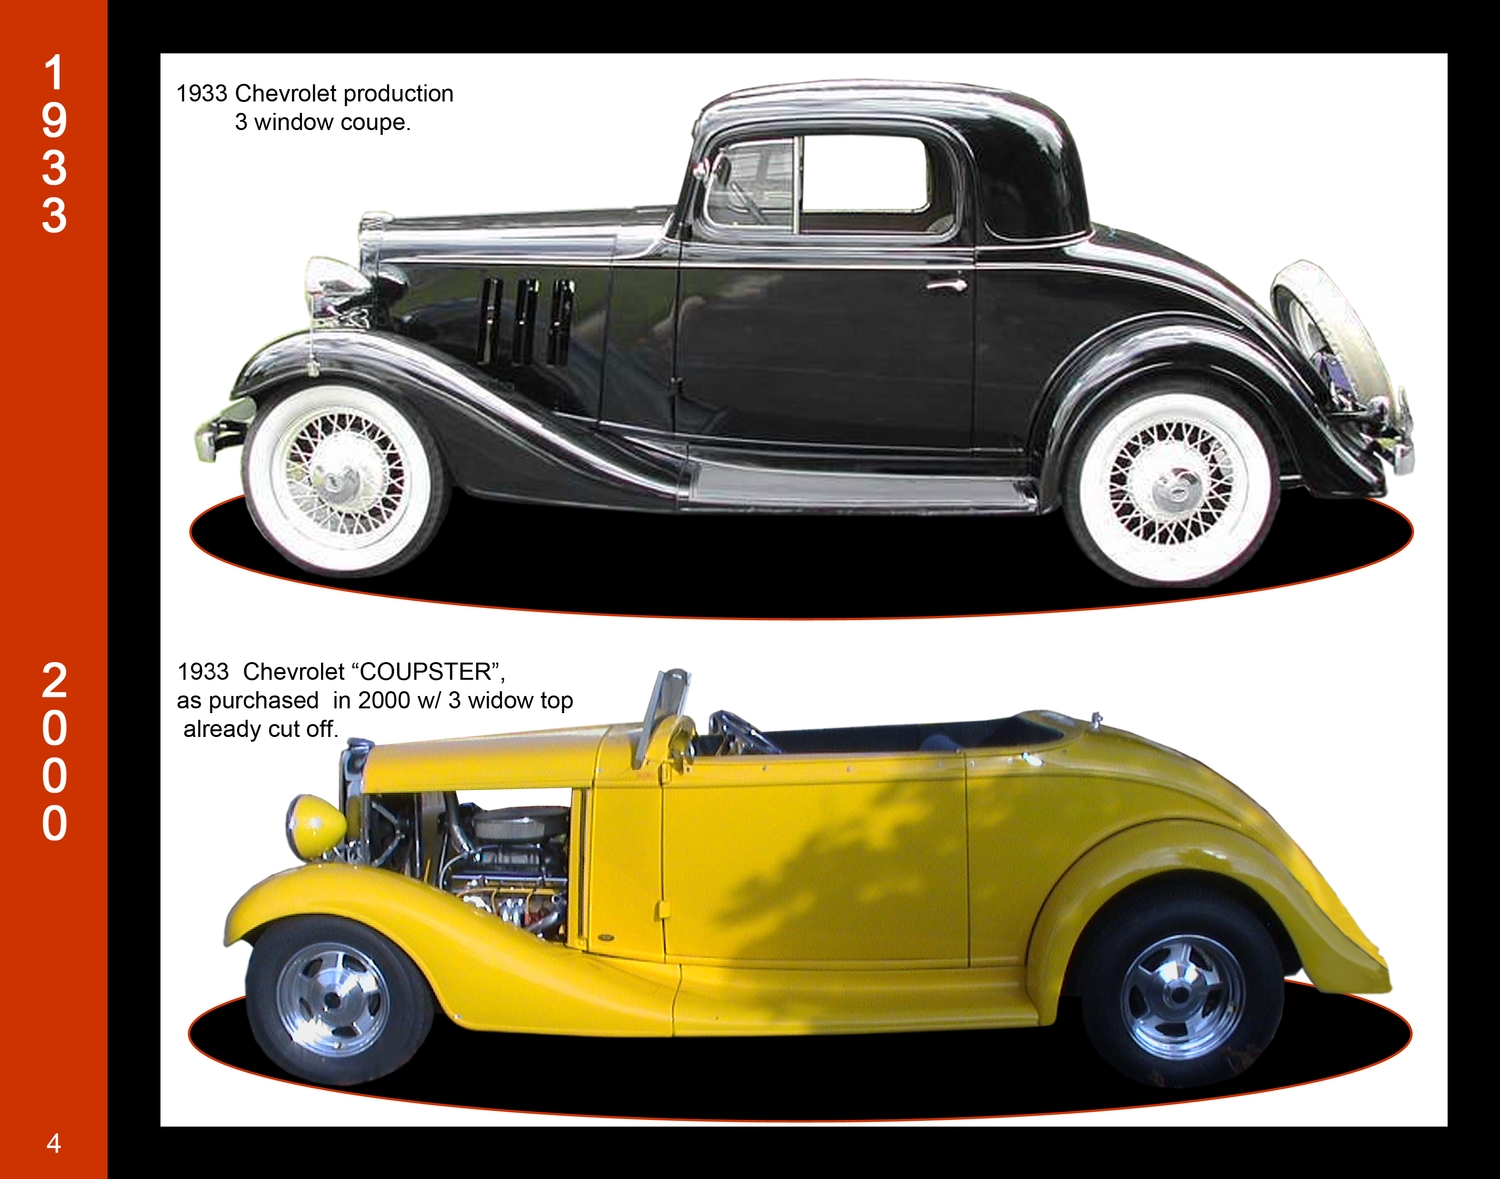 33 Chevy, Page 4.jpg